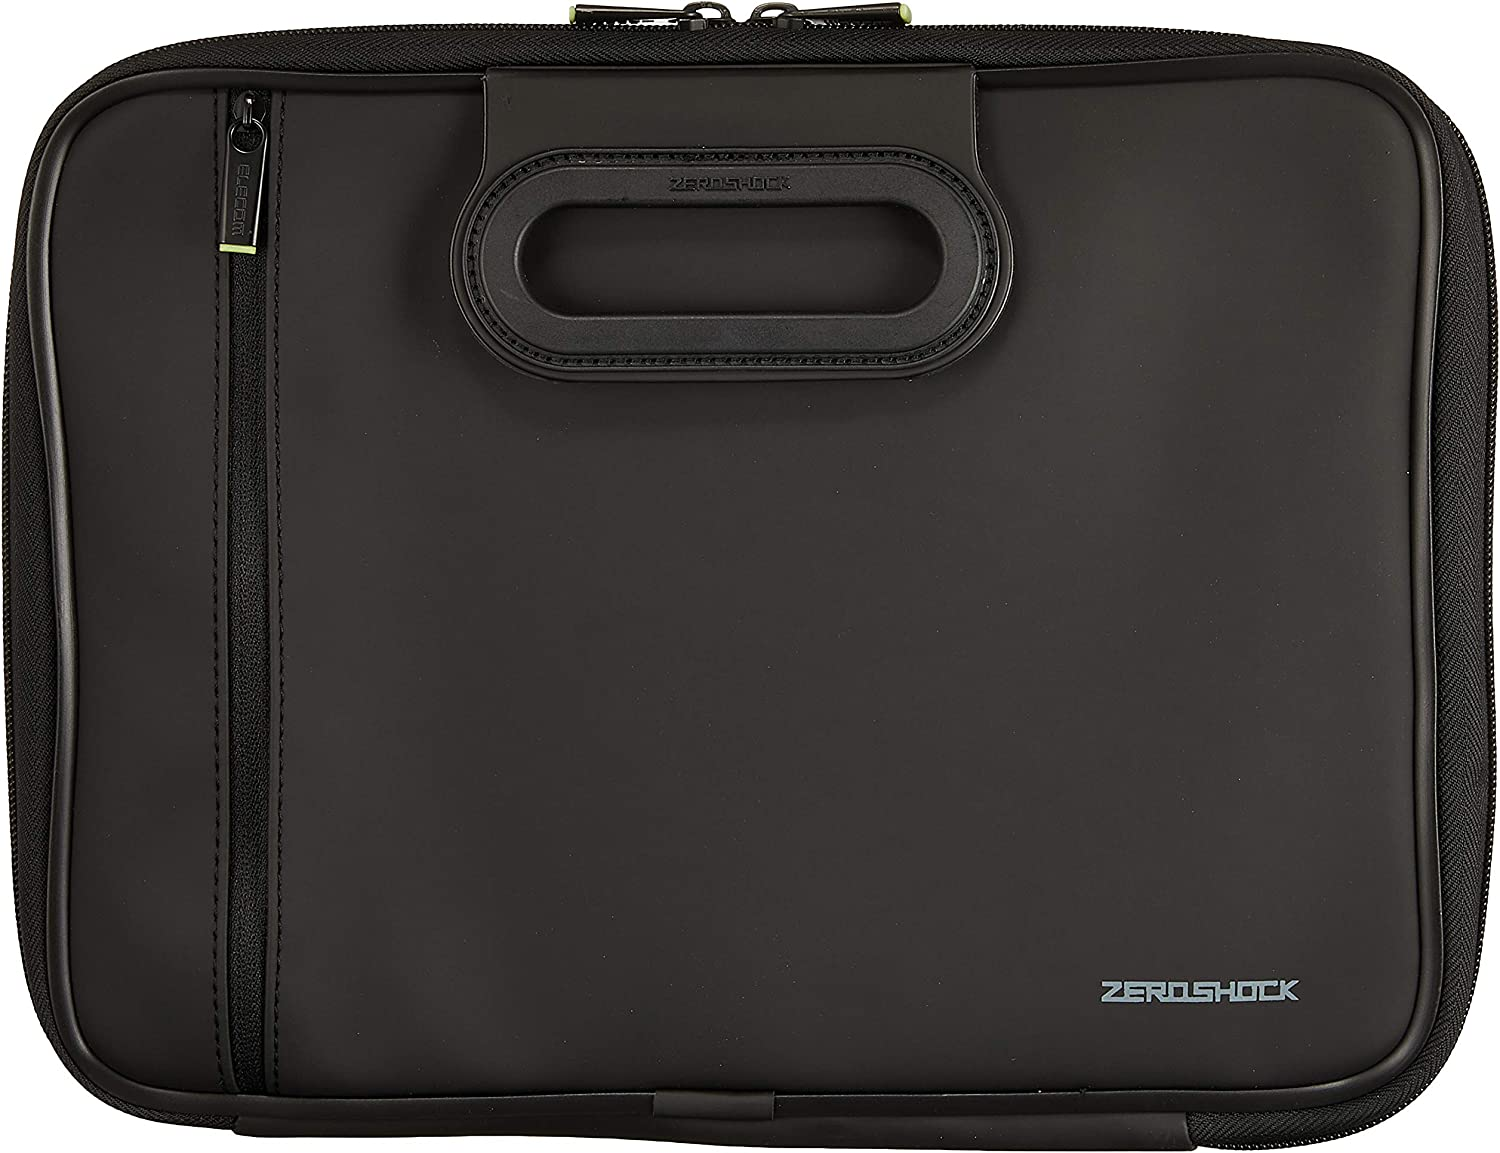 ELECOM Zero Shock Protective Sleeve, Water-Resistance up to 11.6 inch Laptop with The Carry Handle/Black/ZSB-IBNH11BK